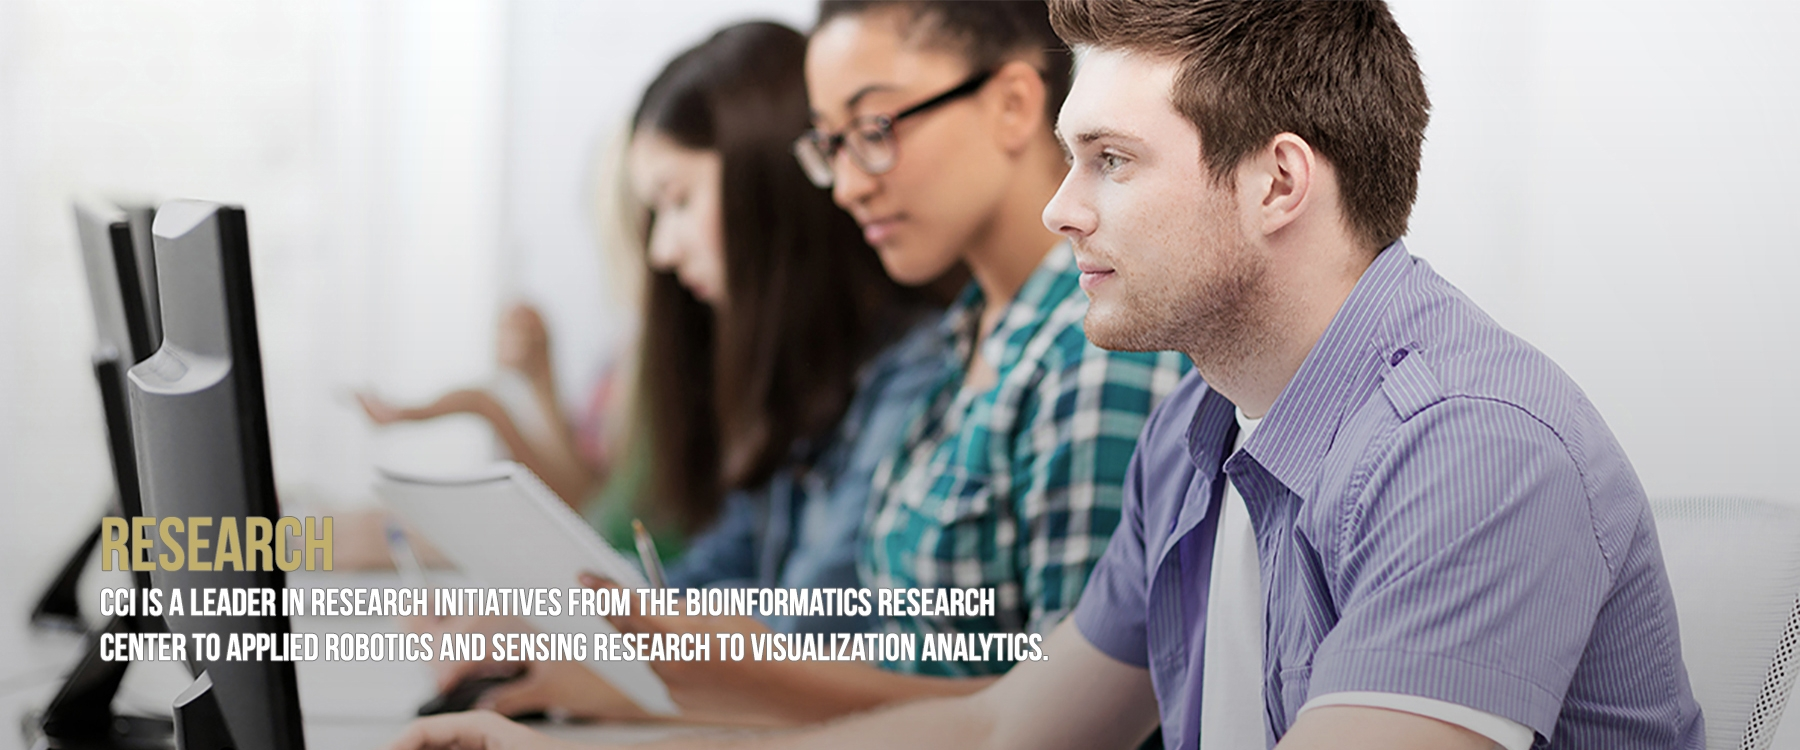 CCI is a leader in research initiatives from the bioinformatics research Center to applied robotics and sensing research to visualization analytics.